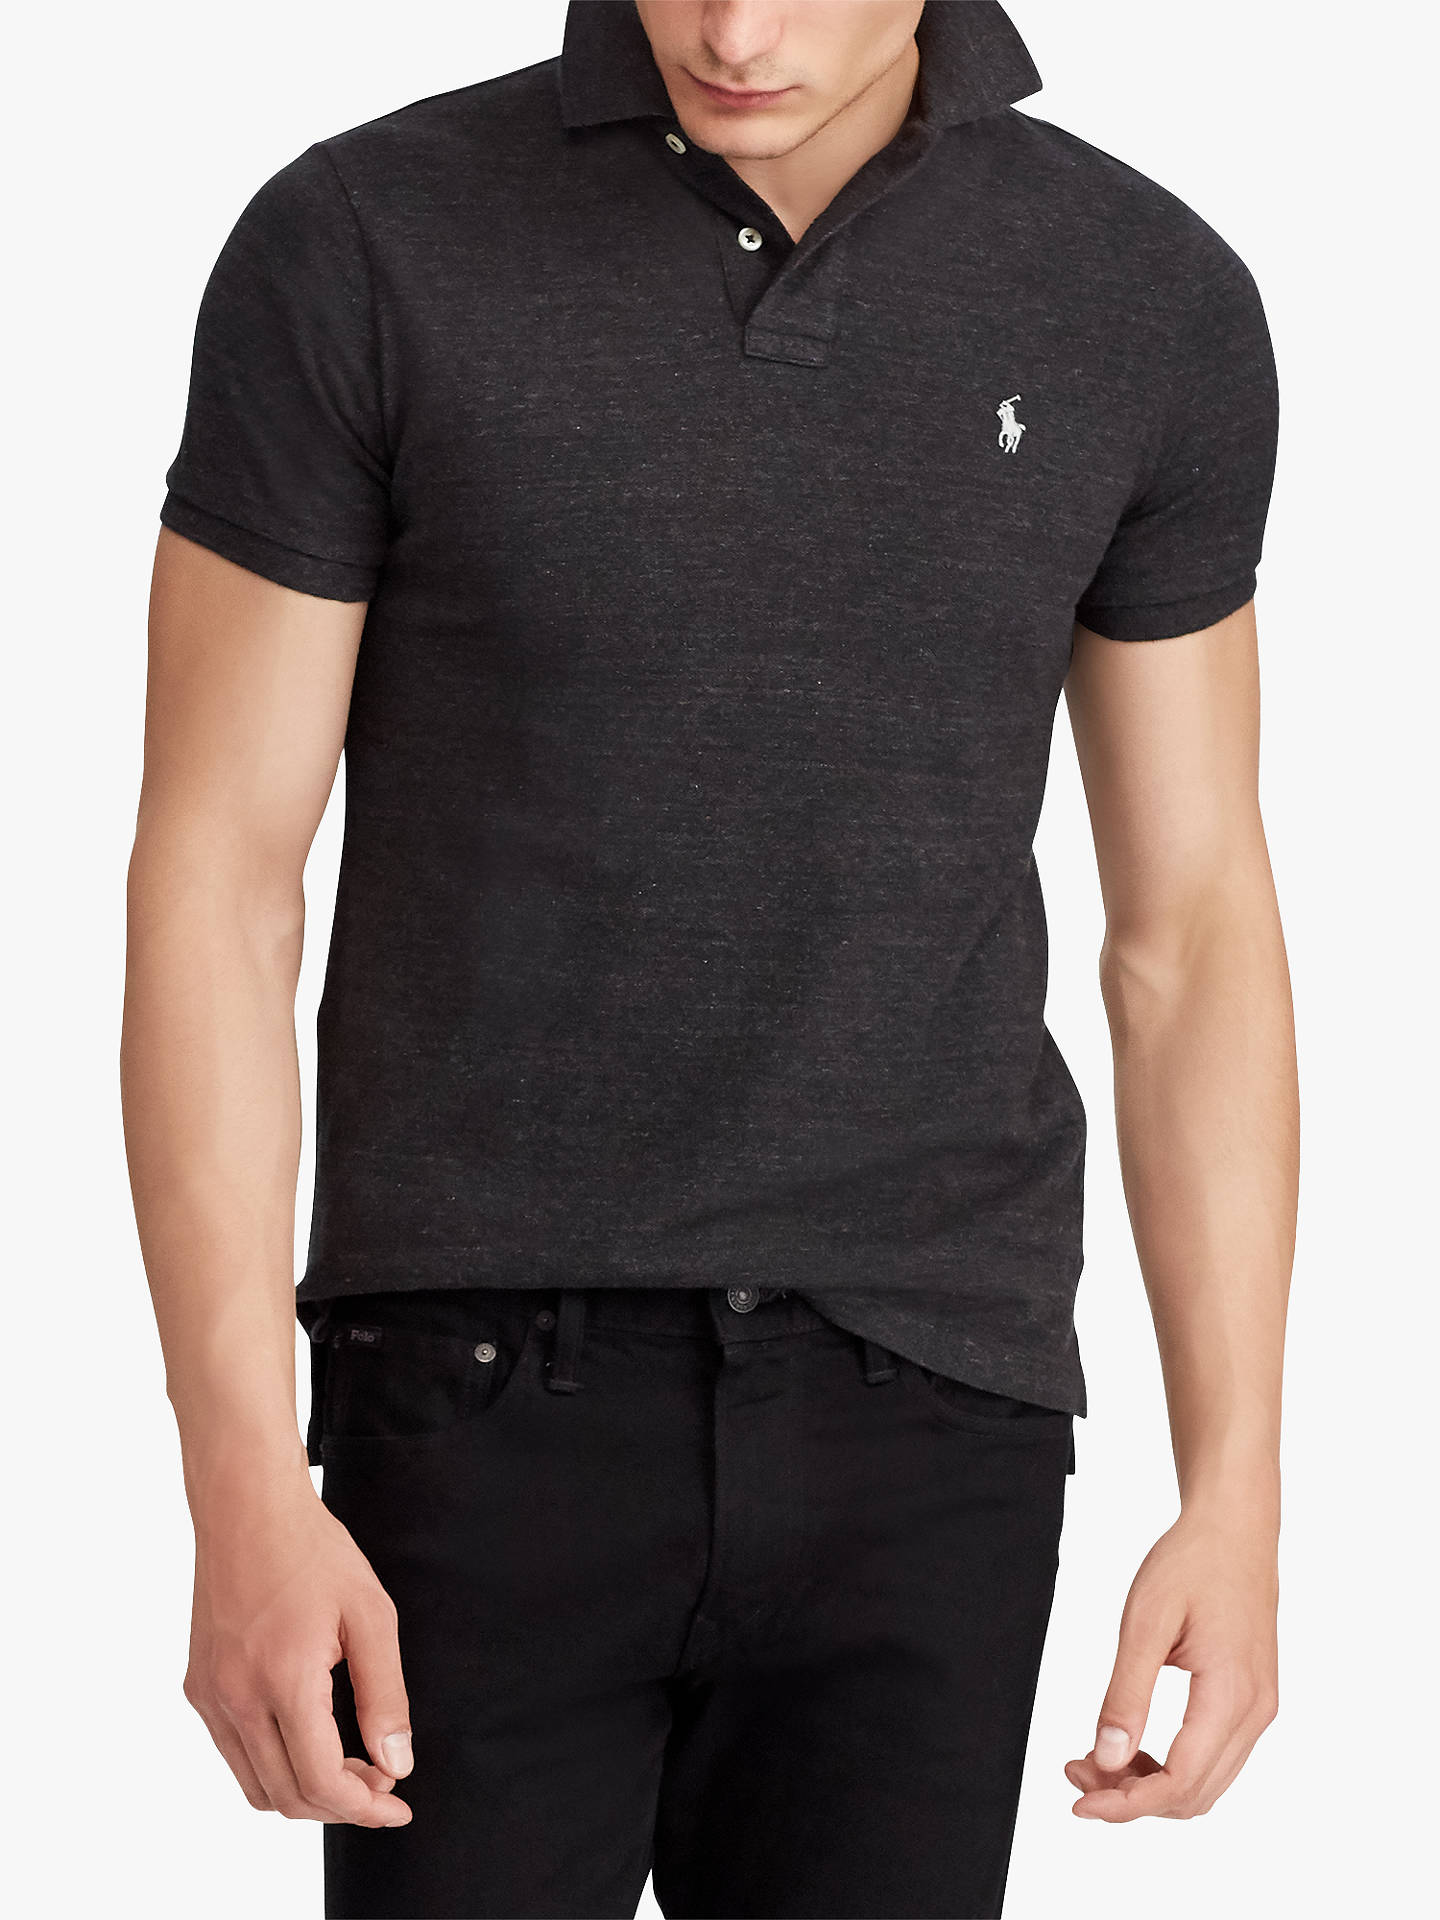 6170a28c Buy Polo Ralph Lauren Custom Slim Fit Mesh Polo Shirt, Black Marl Heather,  S ...